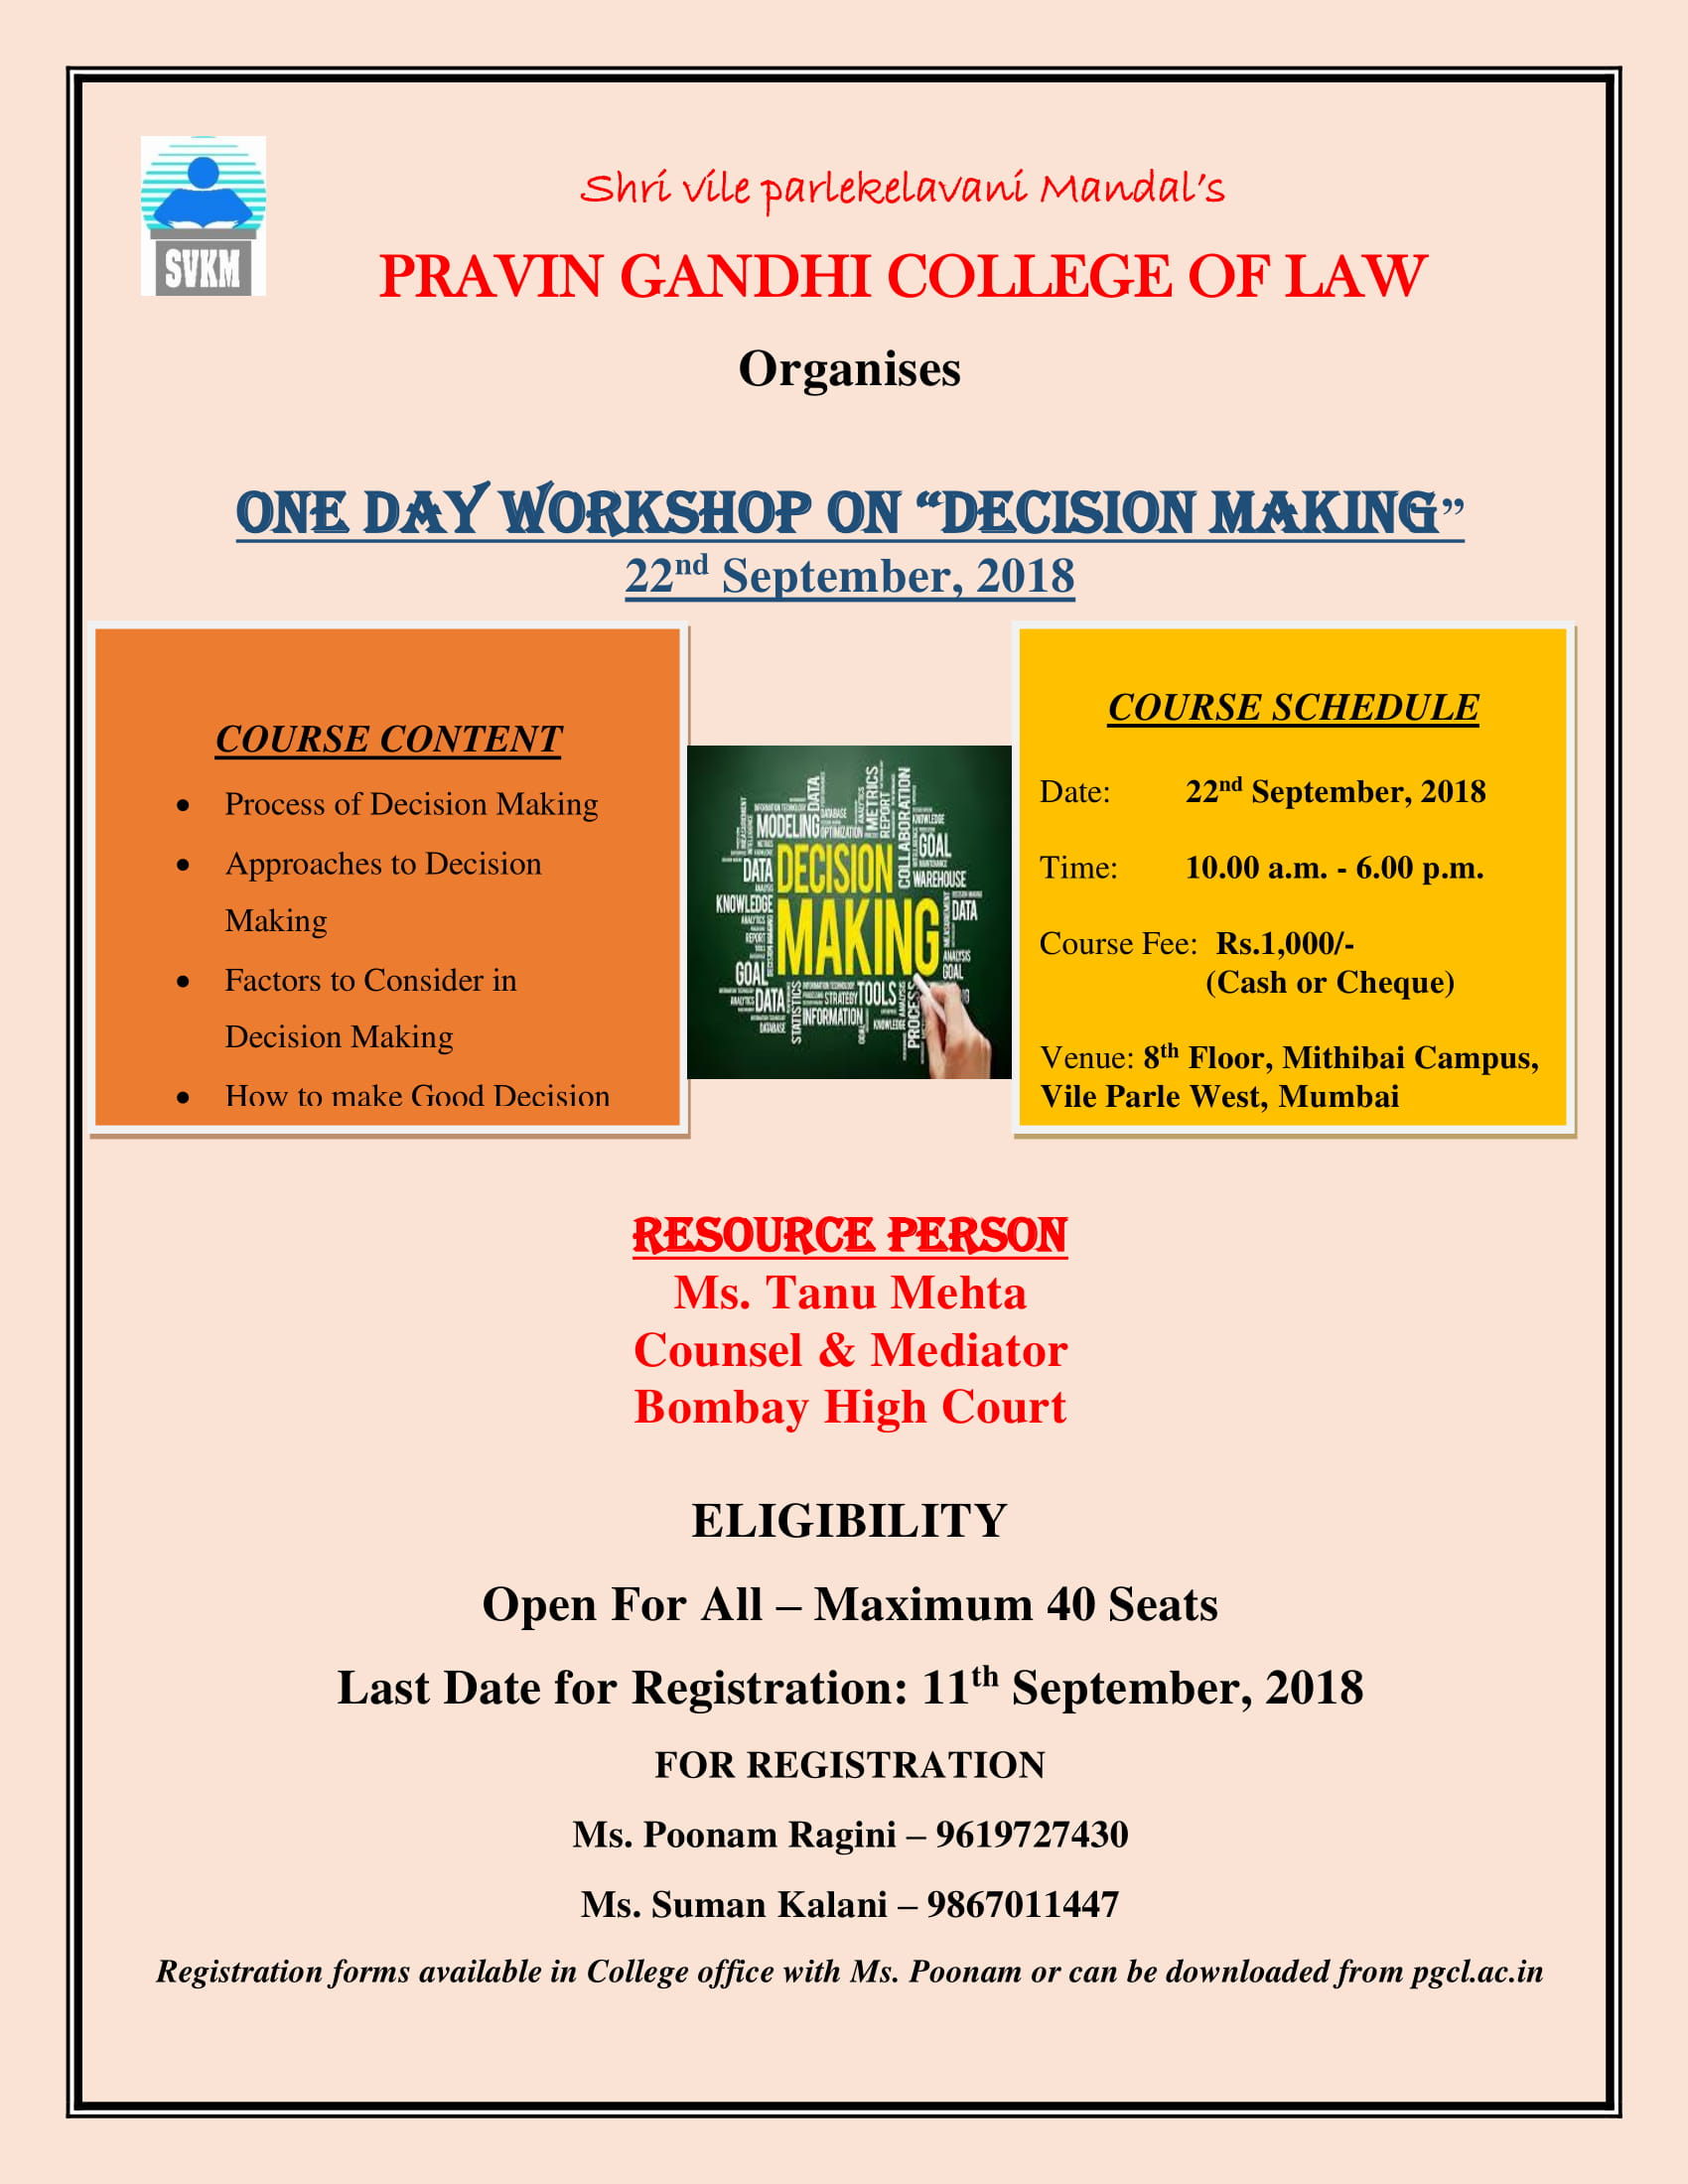 One Day Workshop on Decision Making